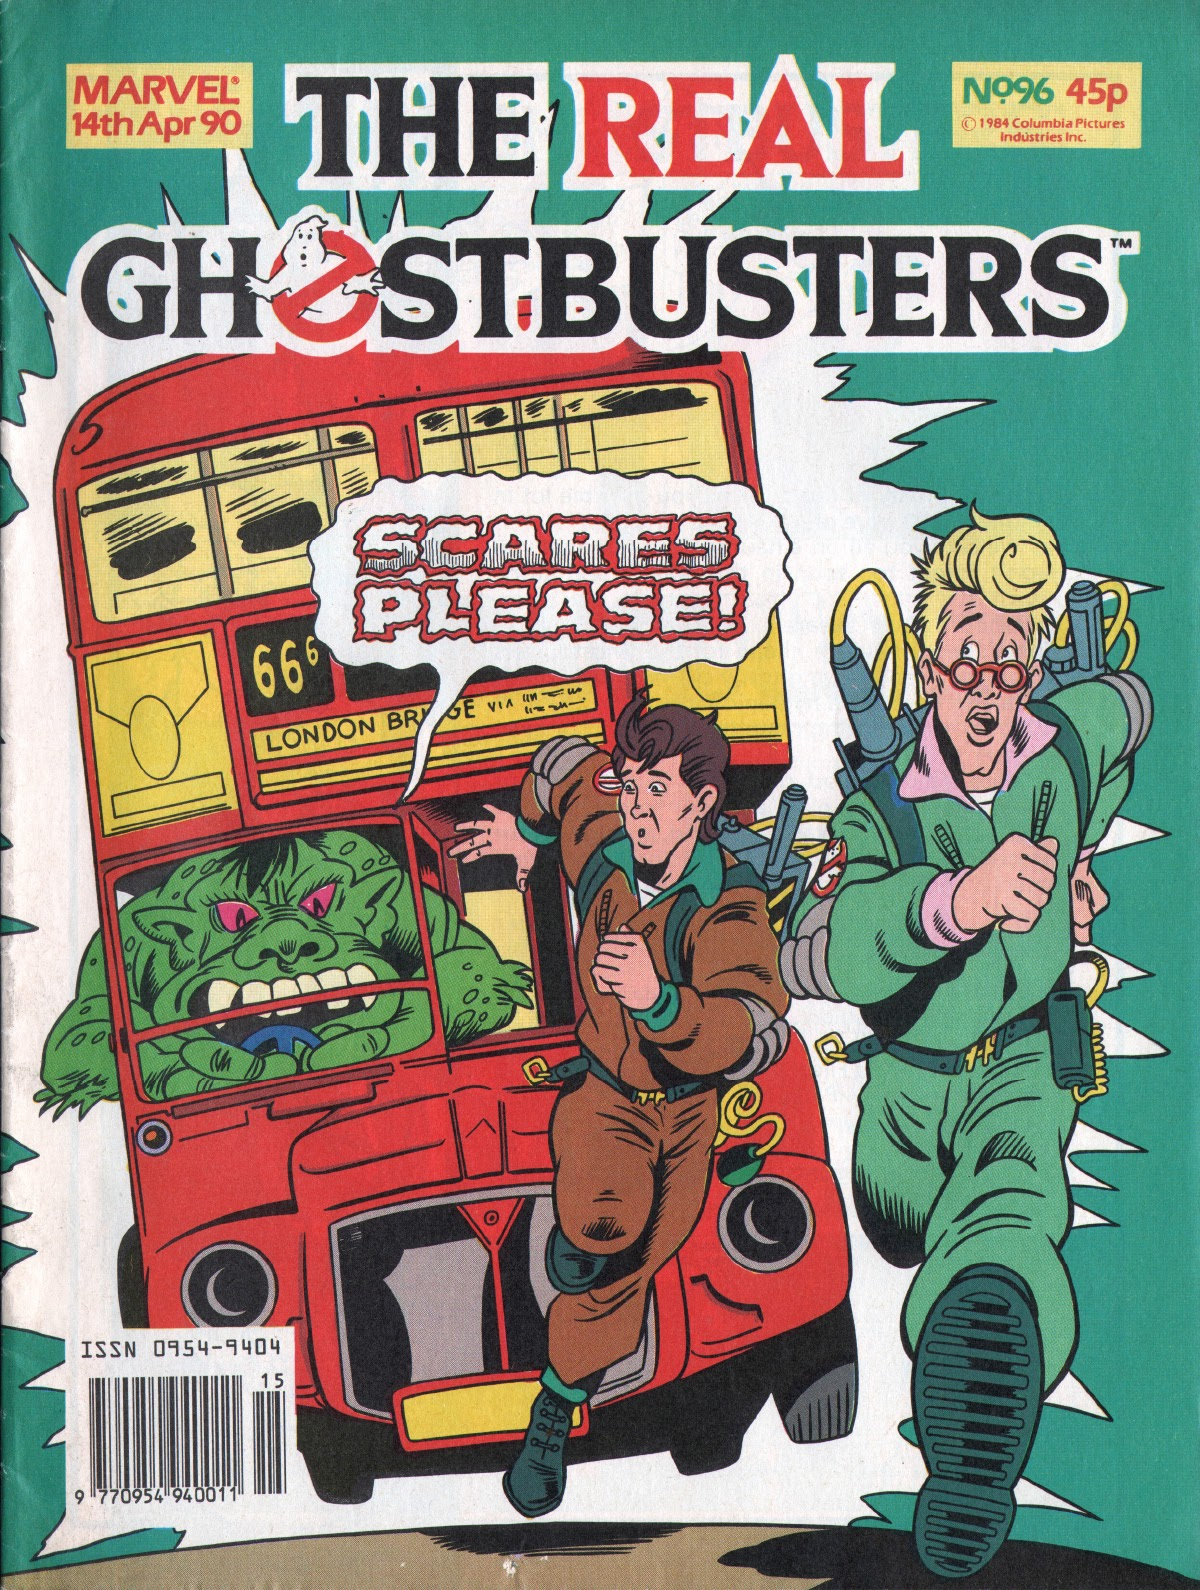 The Real Ghostbusters 96 Page 1